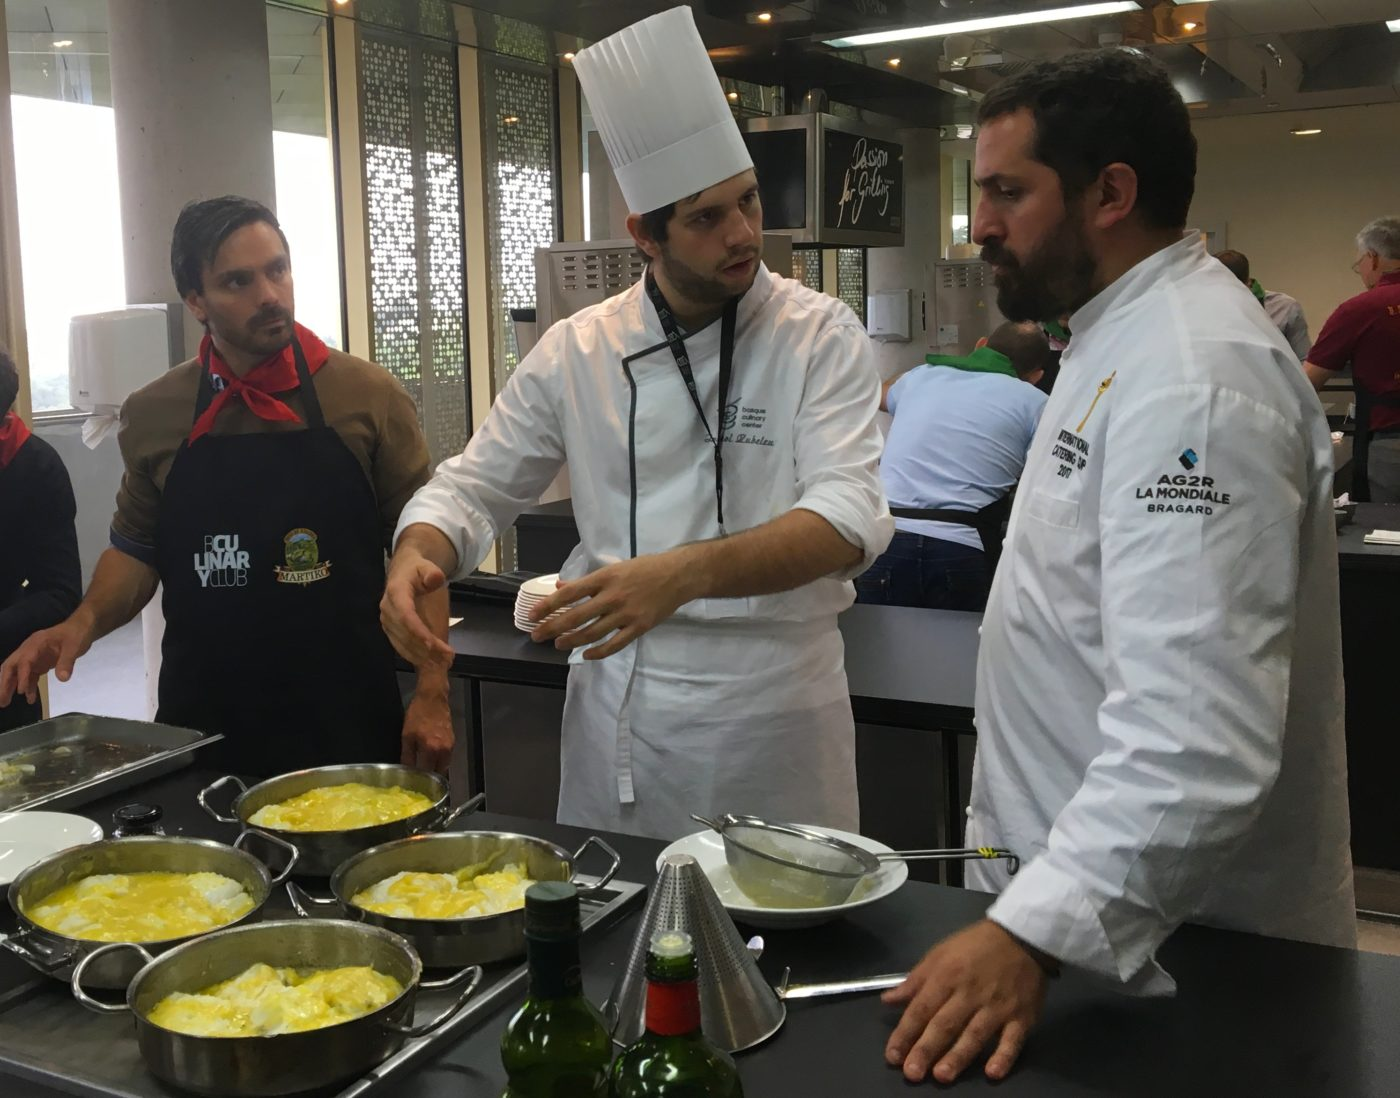 Seminaire team building cuisine Gastronomique agence evenementielle-erronda pays basque hendaye saint sebastien cours de cuisine basque culinary center fontarrabie-